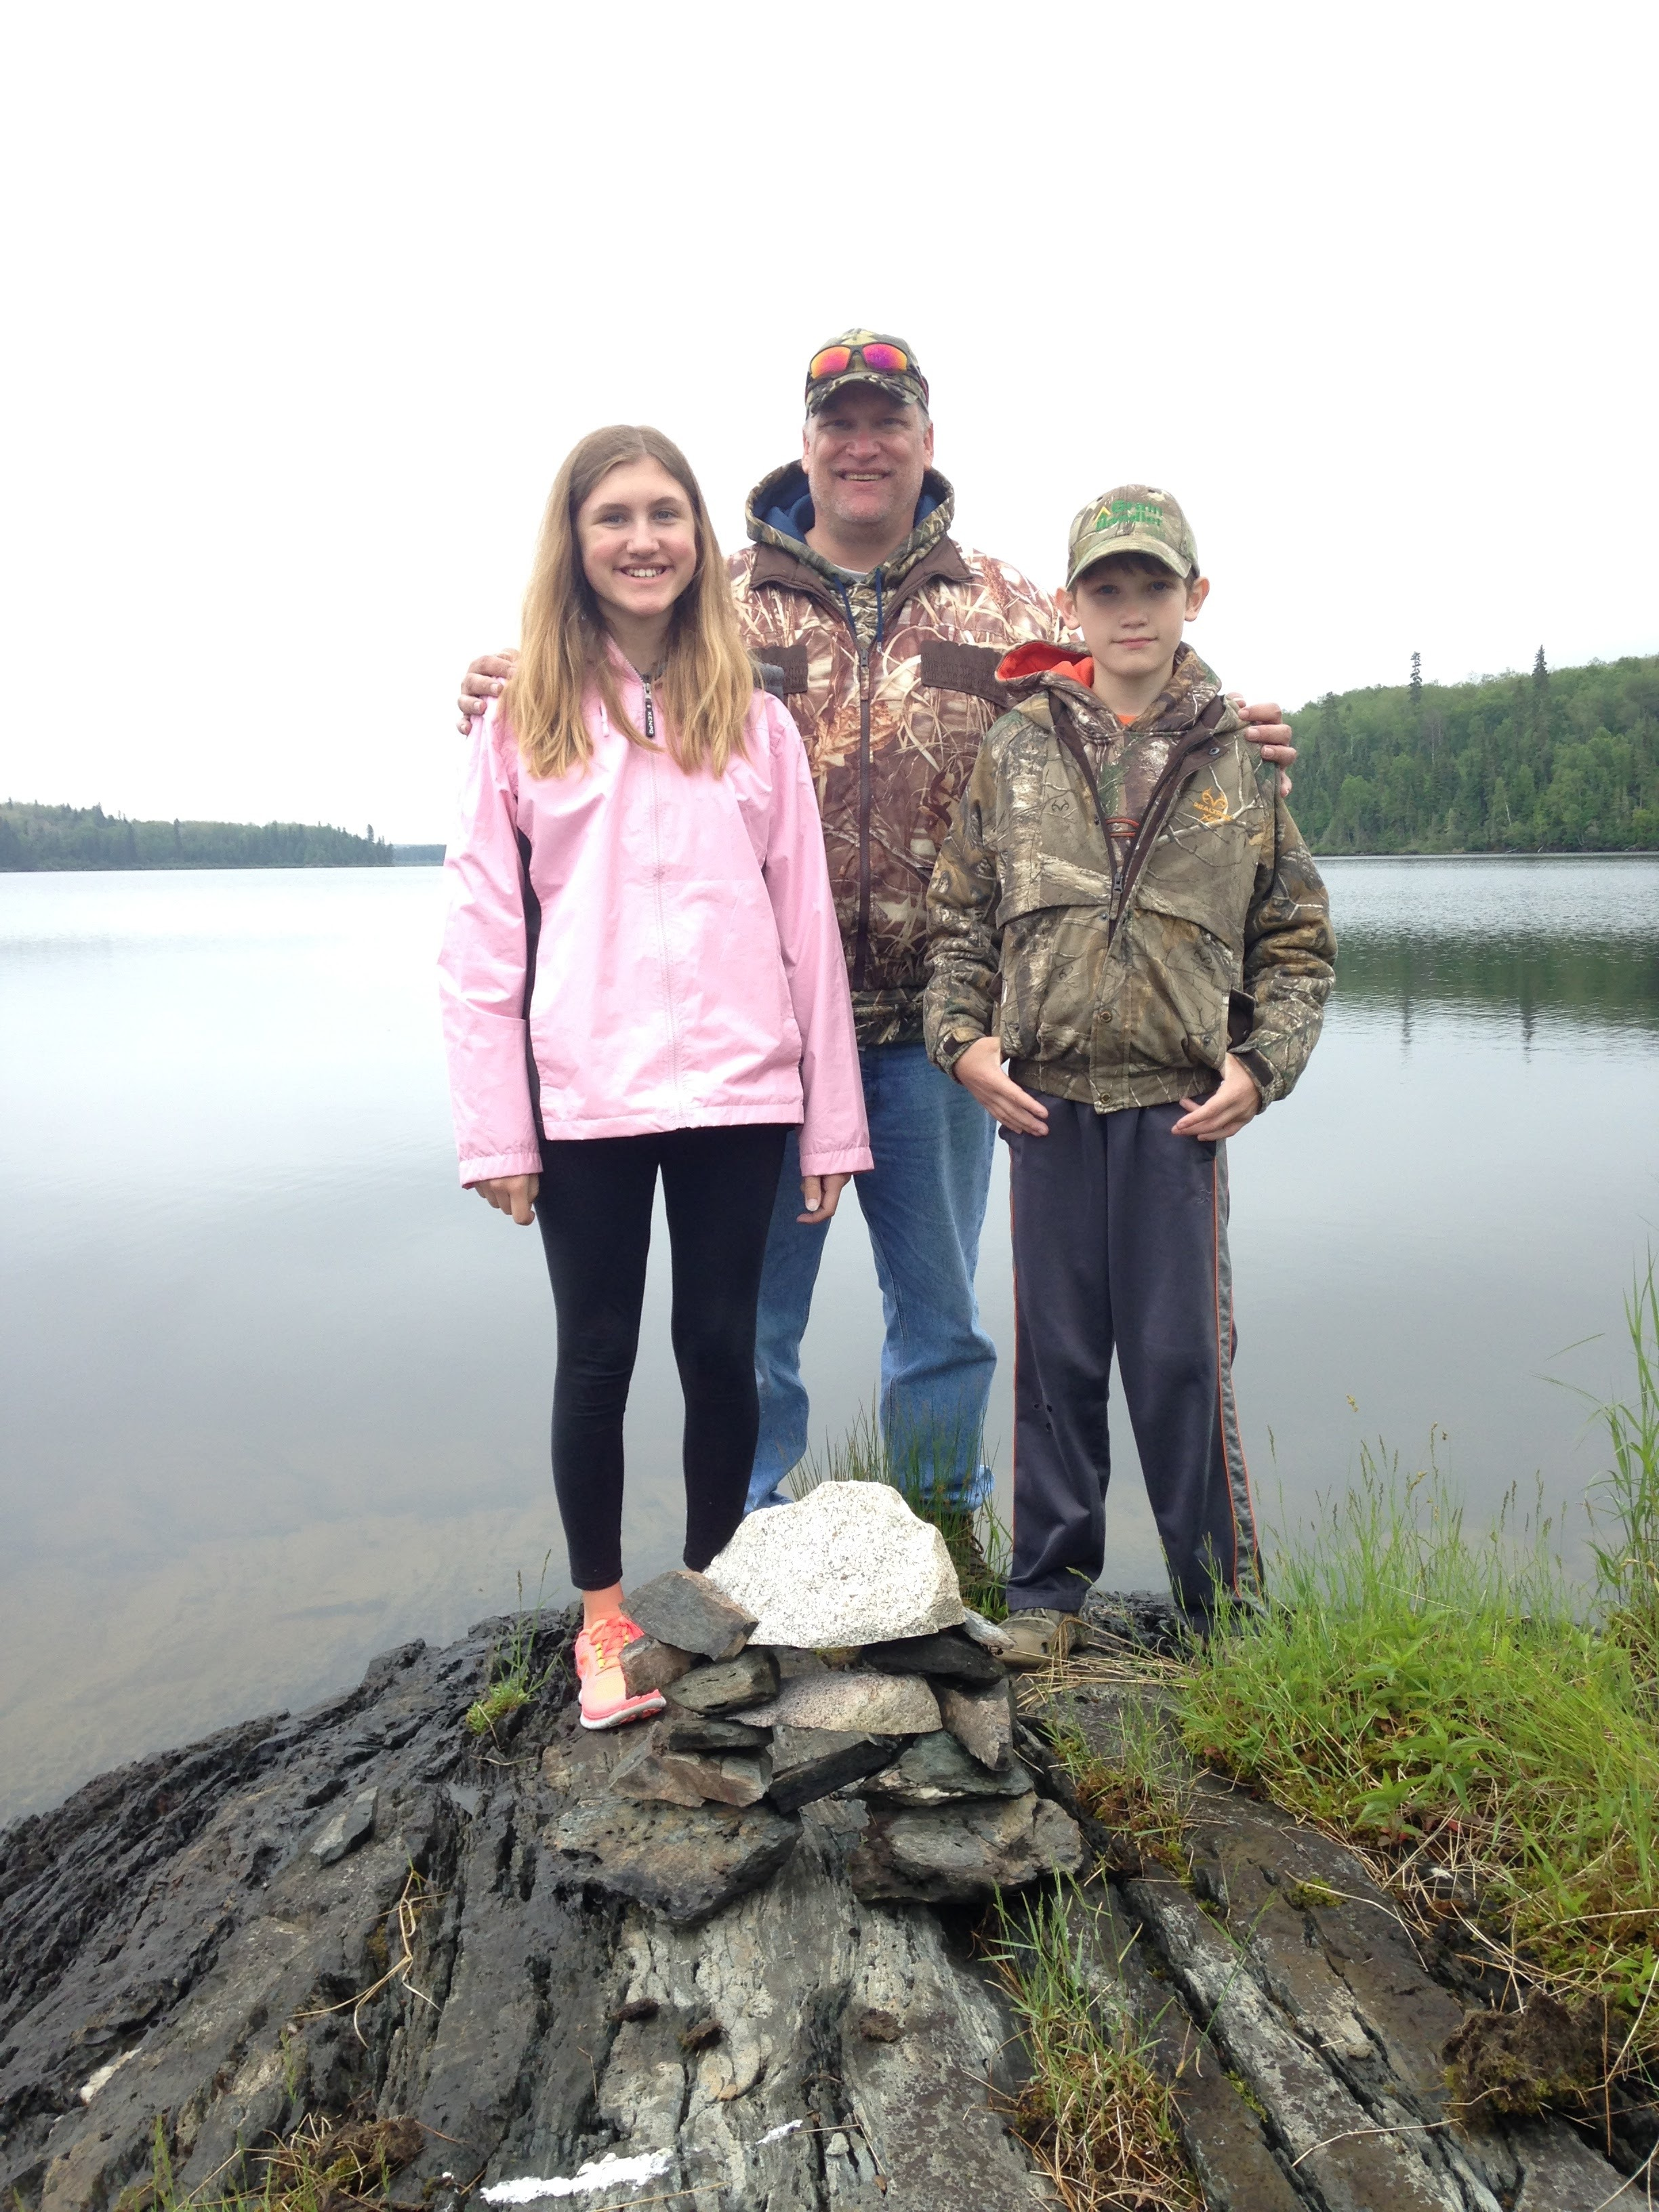 Siblings-and-Dad-with-Rock-Pile-Canada.jpg